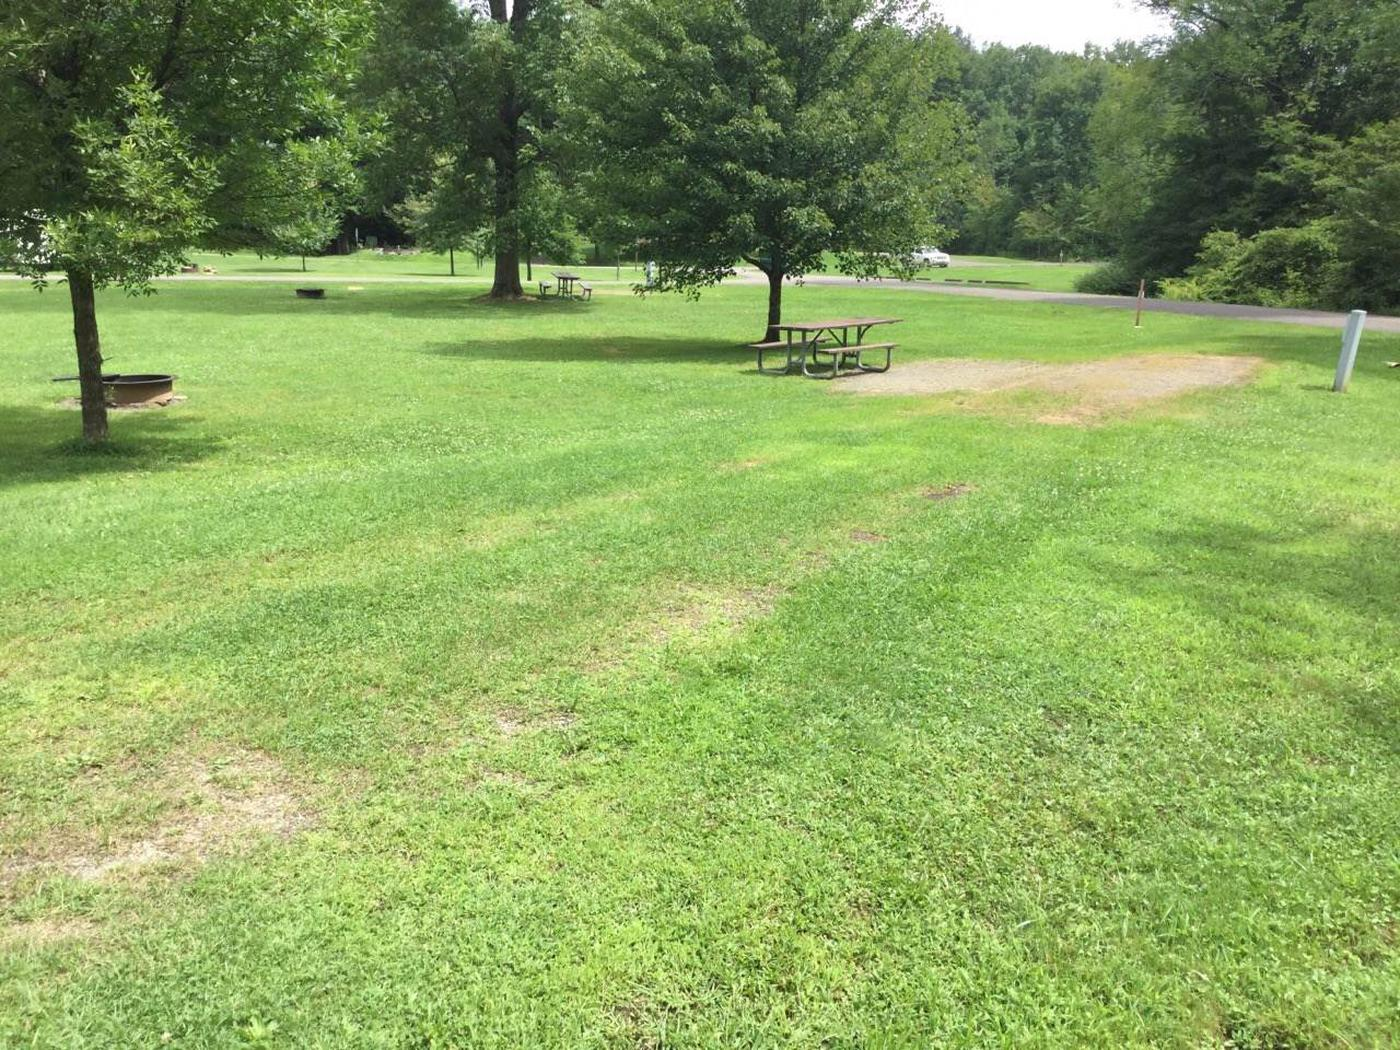 Willow Bay Recreation Area: Campsite: 28